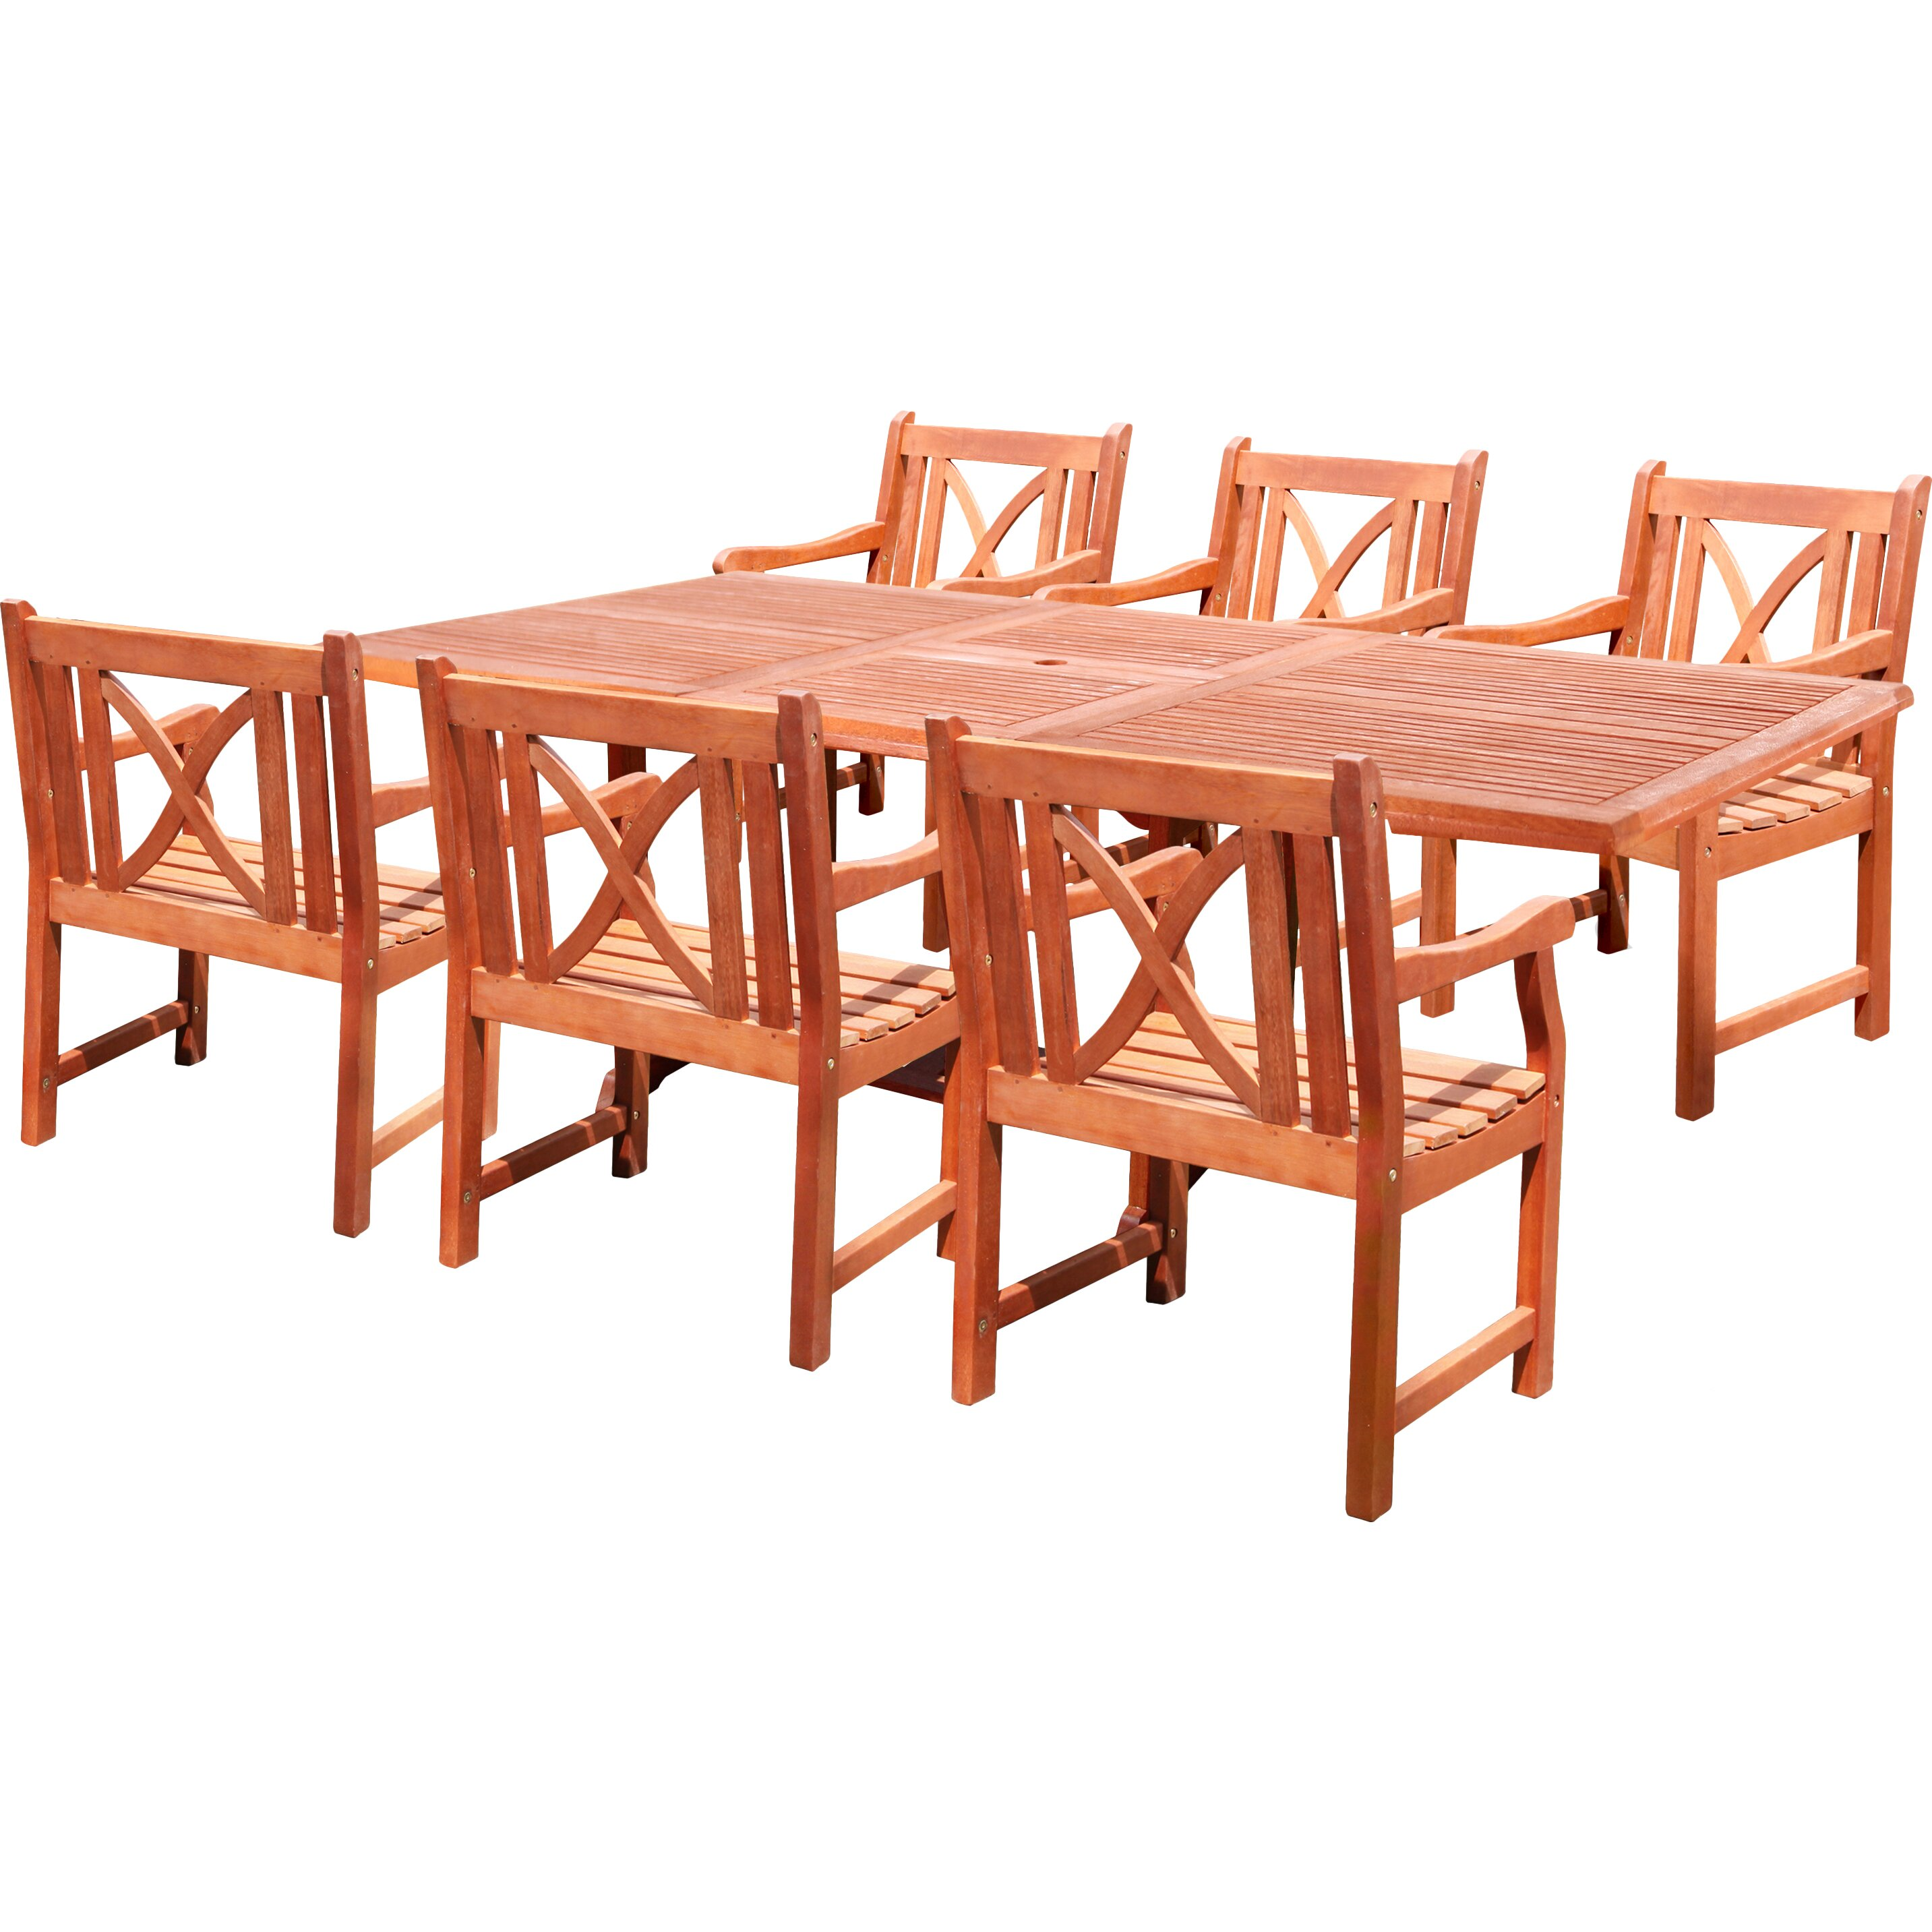 Vifah patio 7 piece dining set wayfair for 7 piece dining set